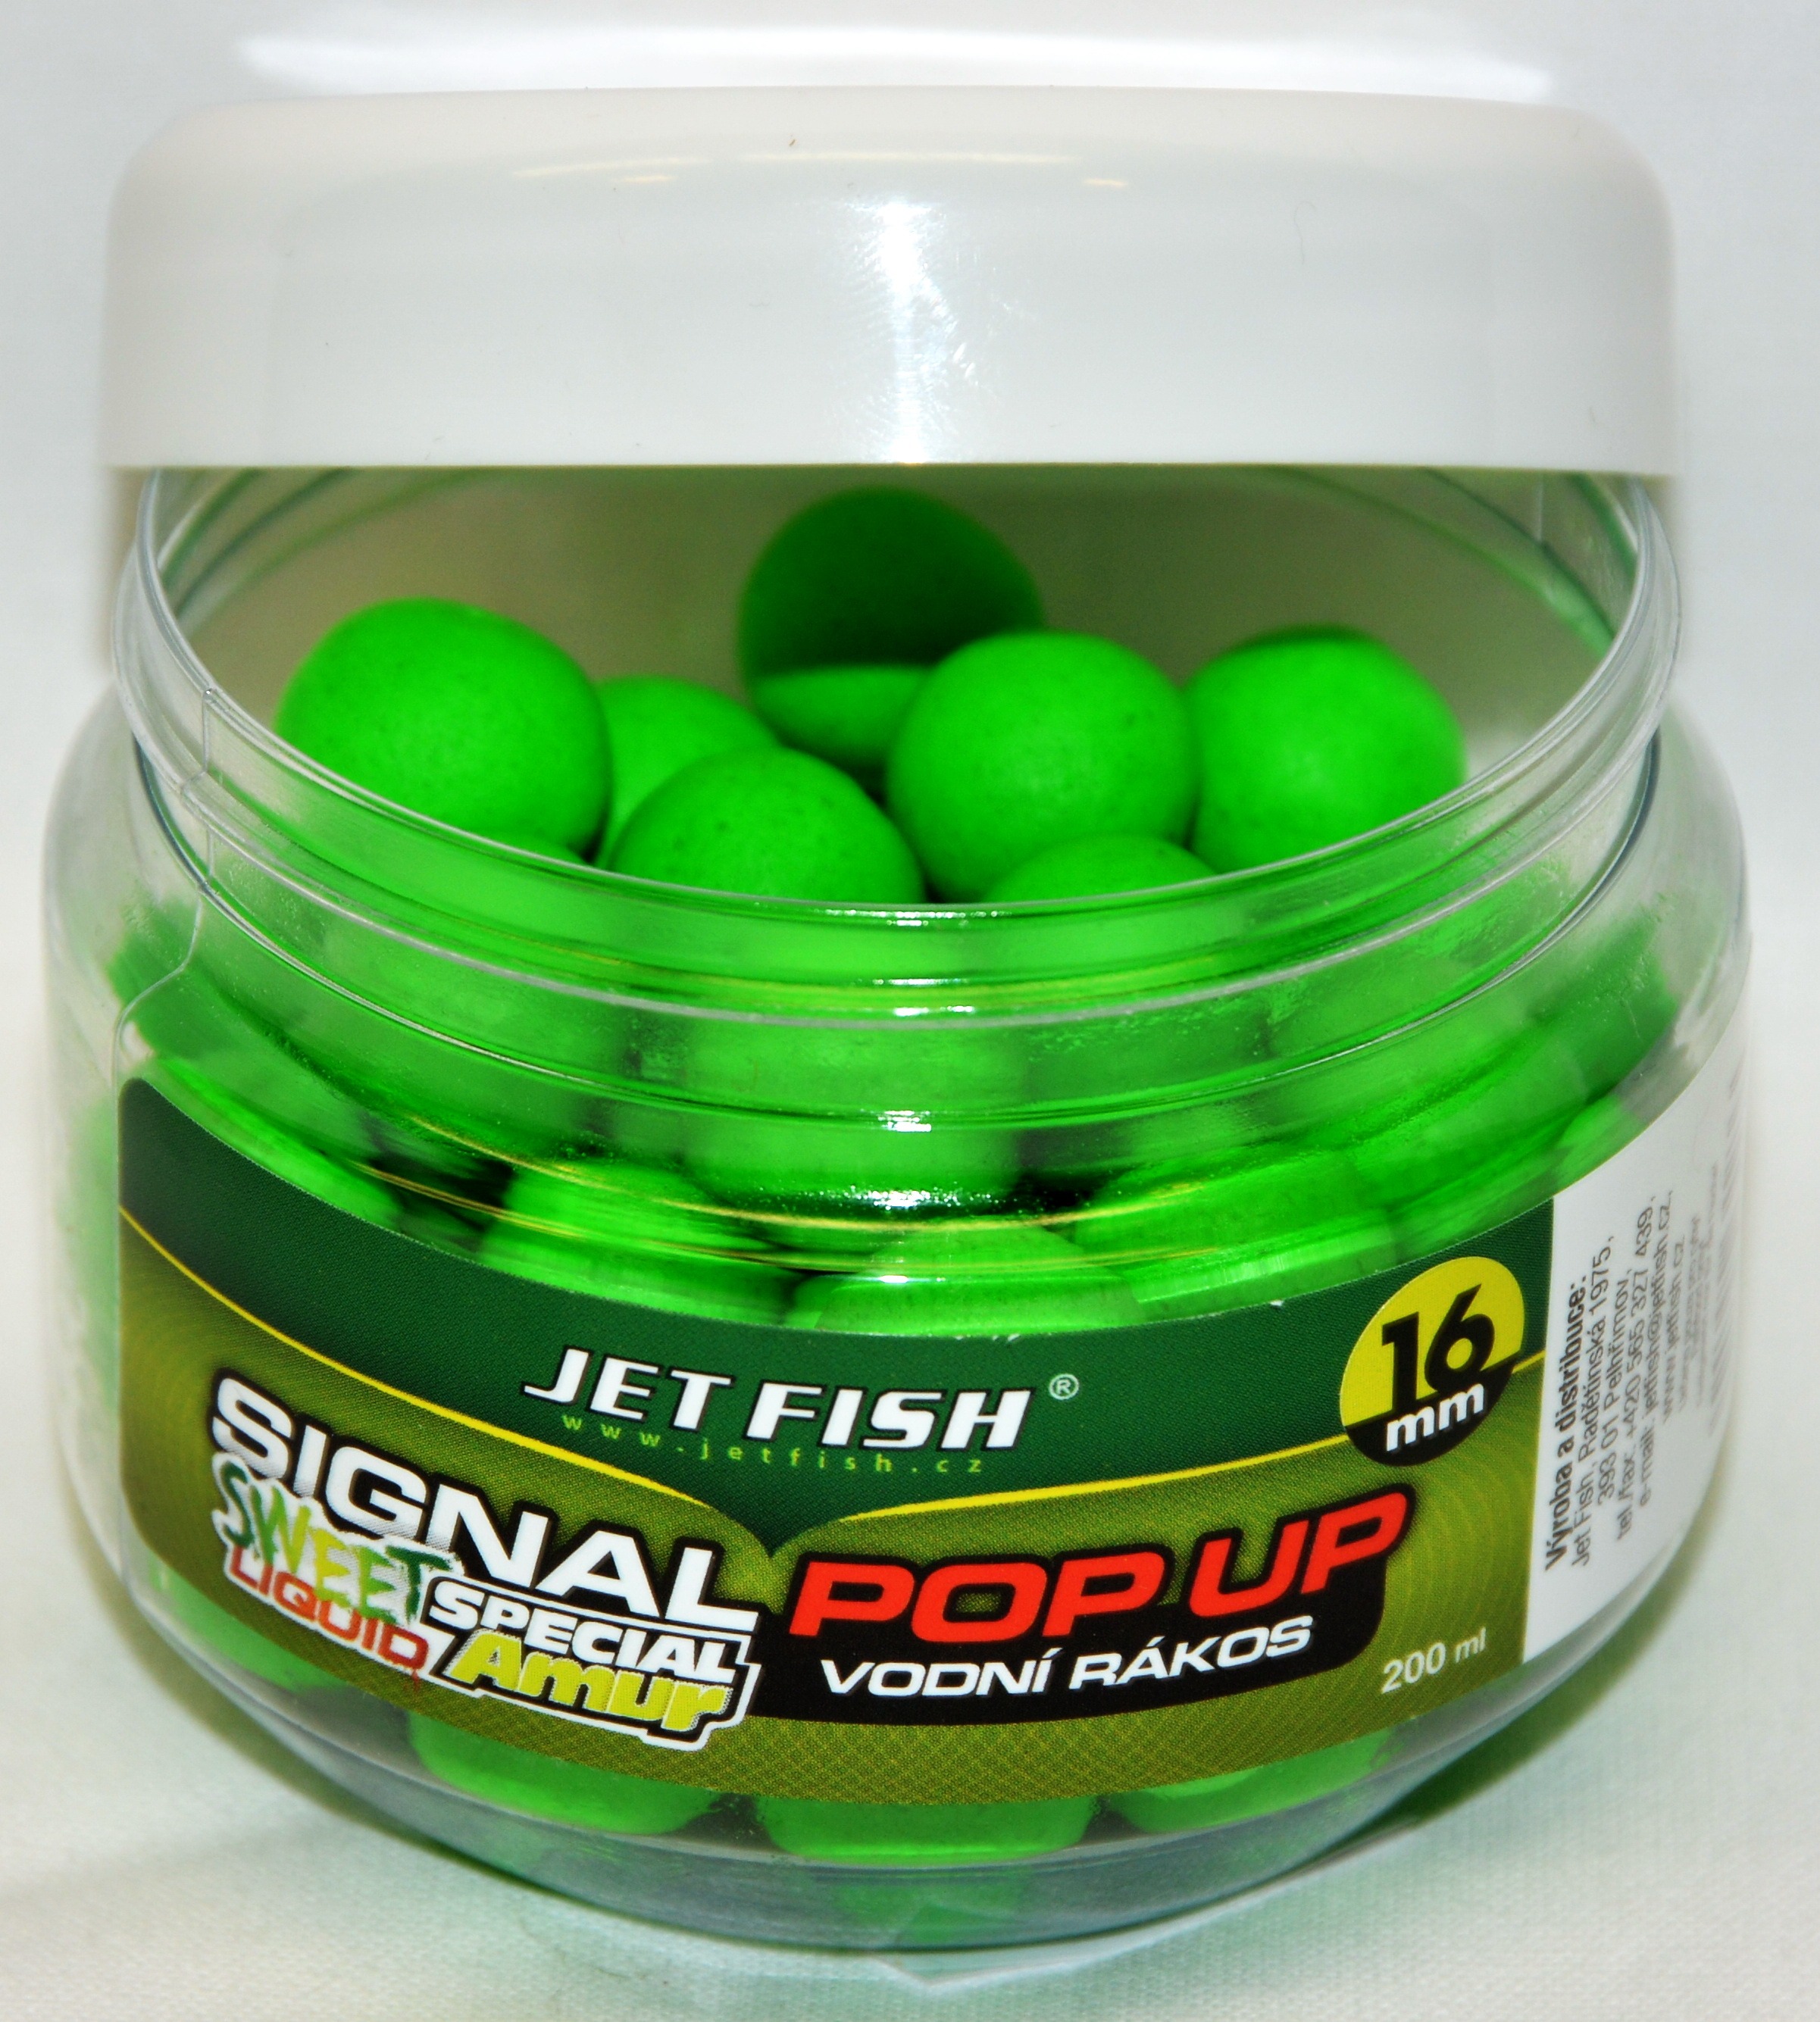 JET FISH Fluoro POP UP LÚČNA TRÁVA 16 mm